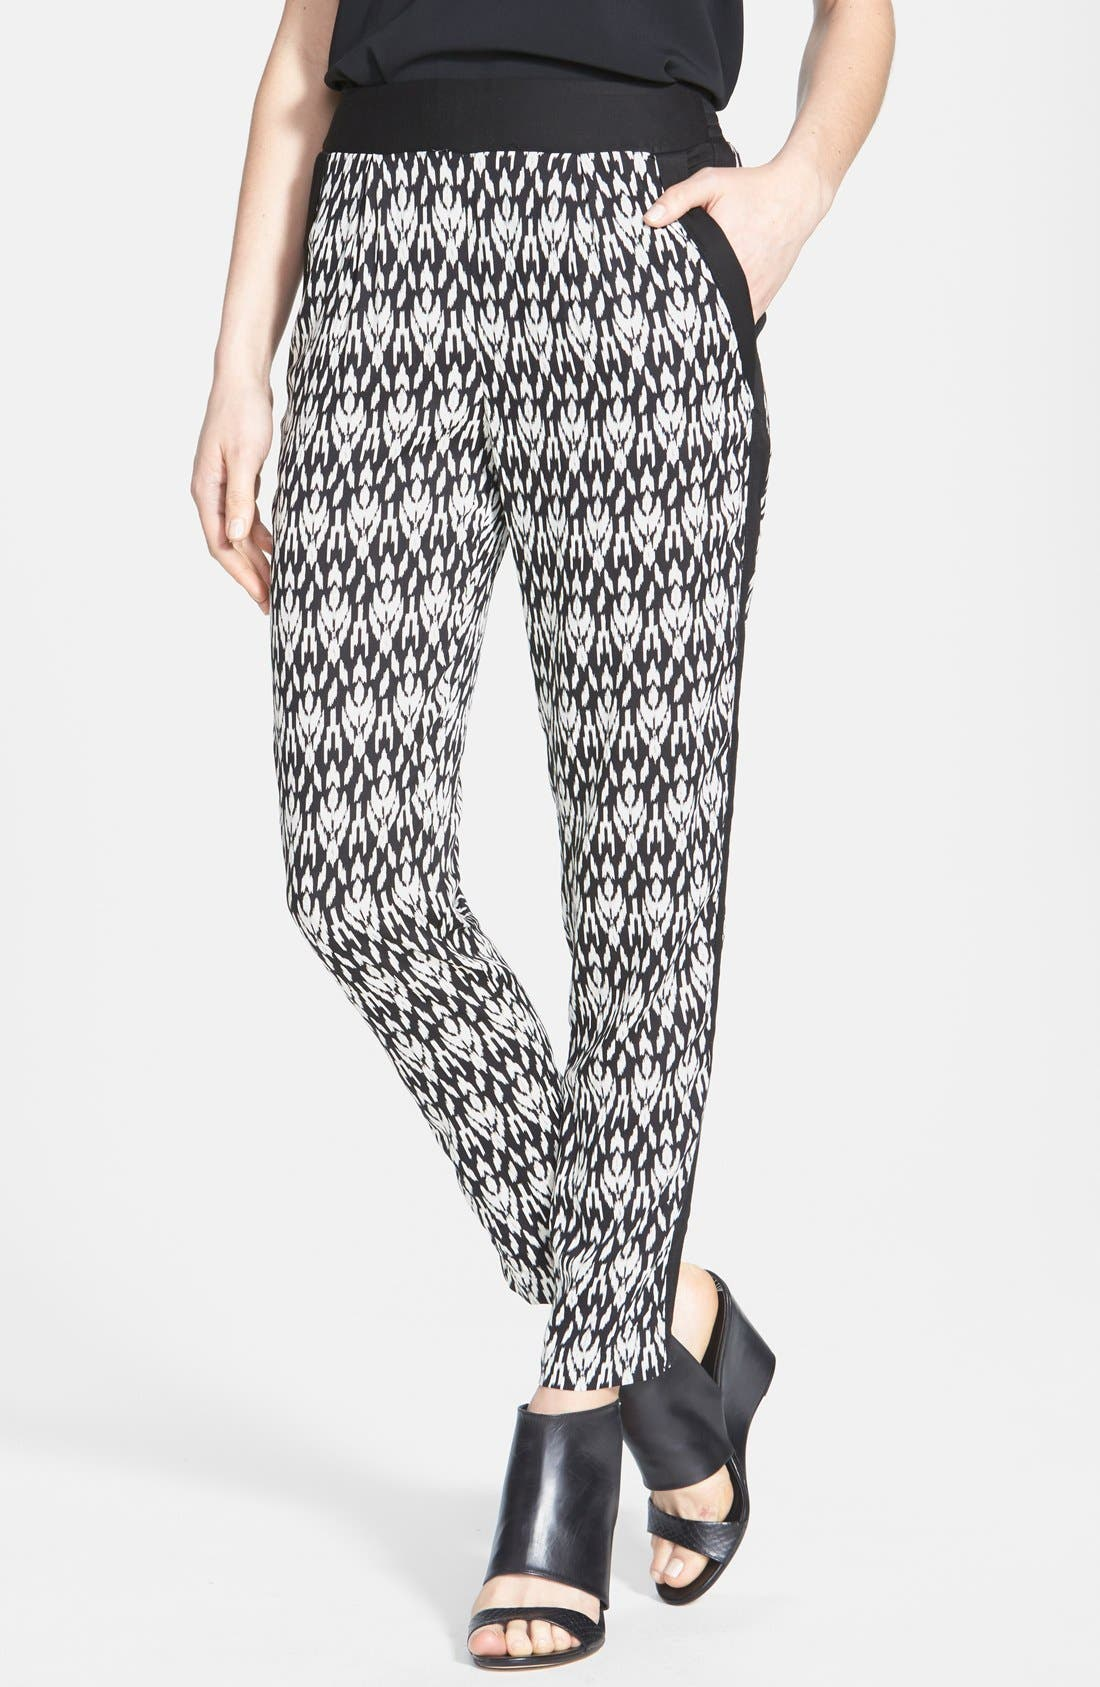 Alternate Image 1 Selected - Max & Mia Pleat Front Print Pants